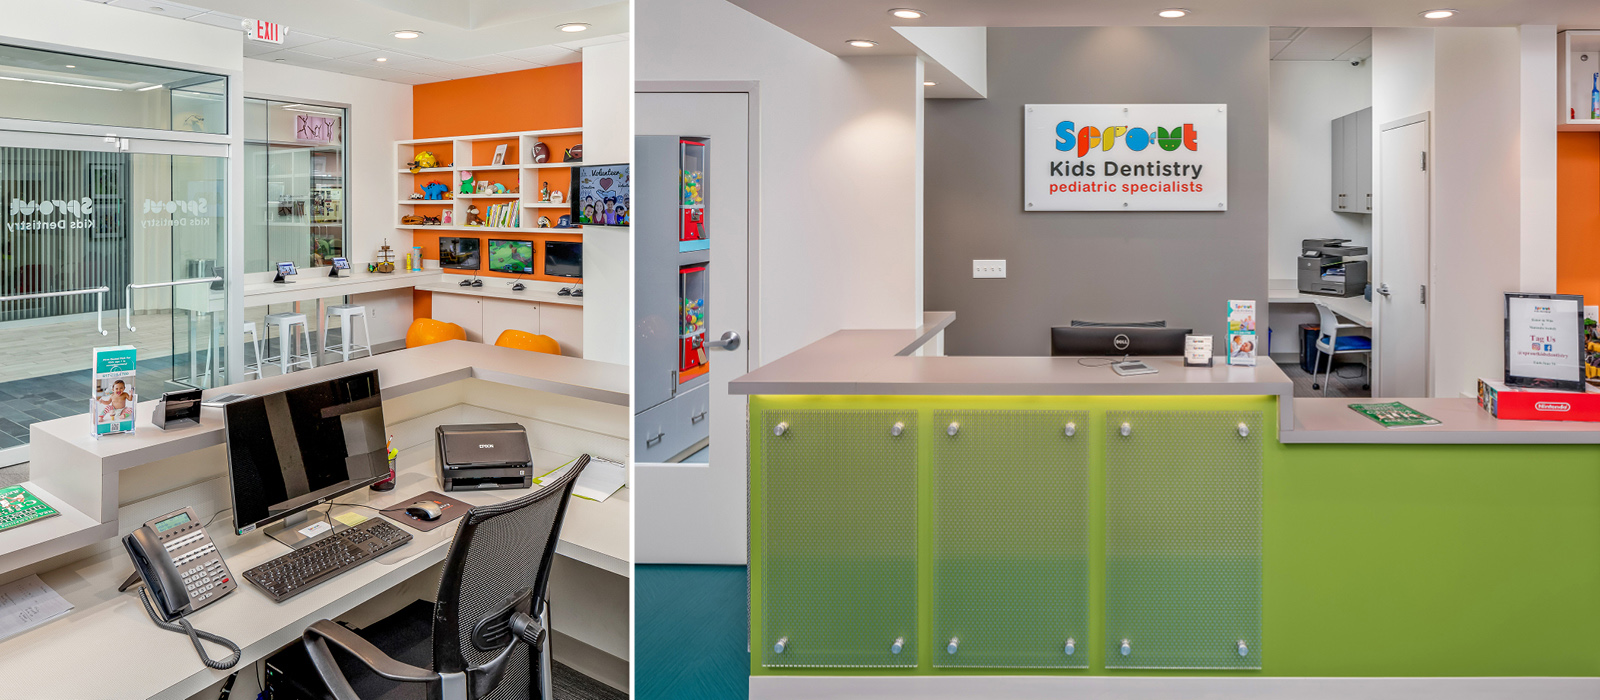 Sprout Dental reception area